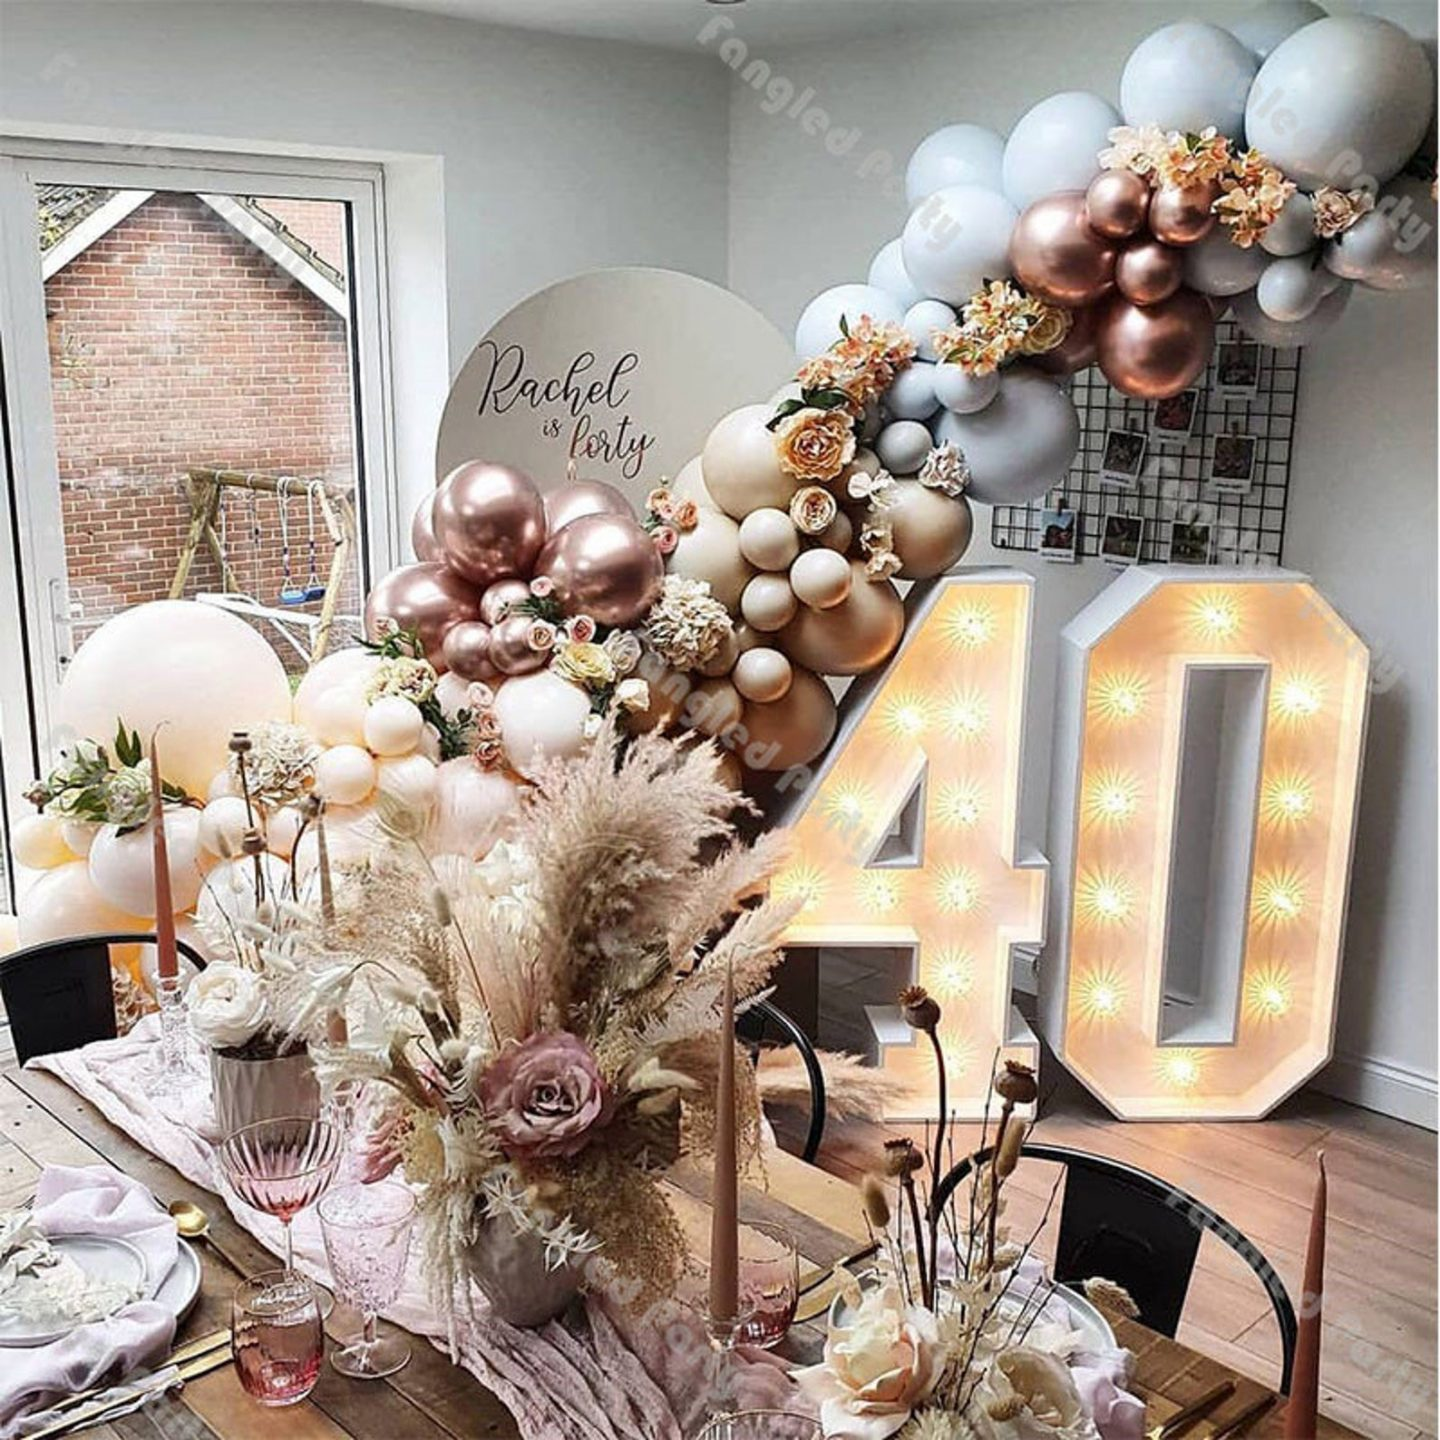 Rose gold birthday decoration with balloon garland and dried flowers for the 40th birthday